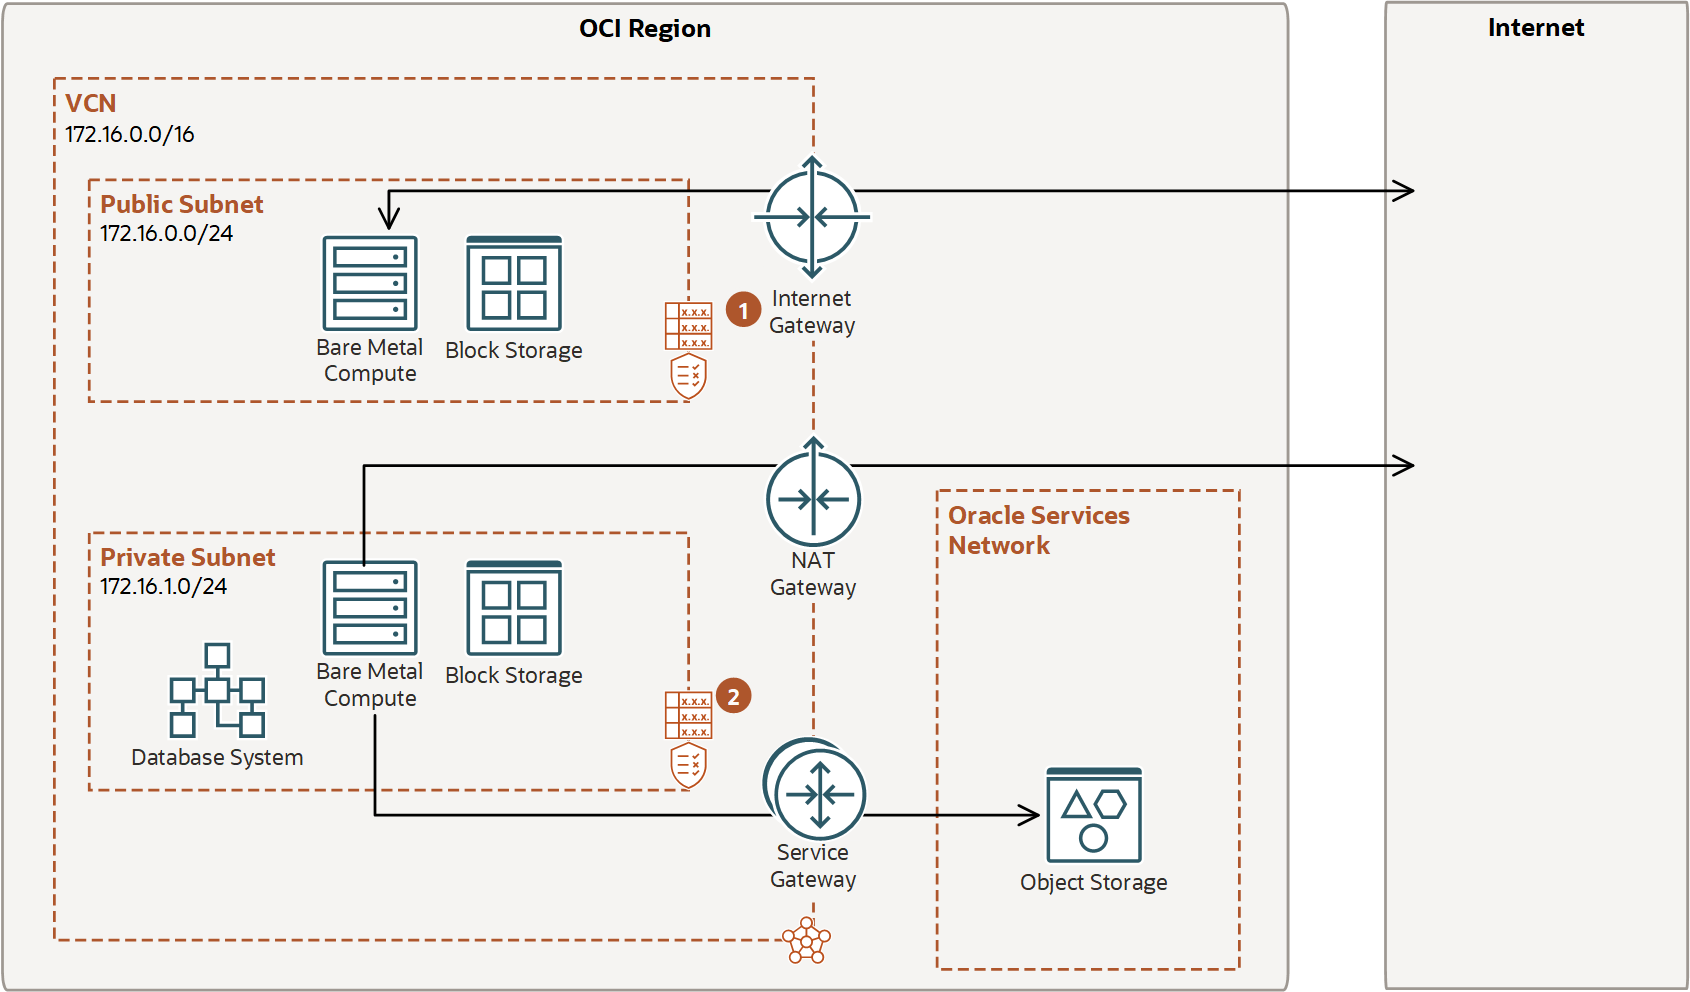 Access to Oracle Services: Service Gateway